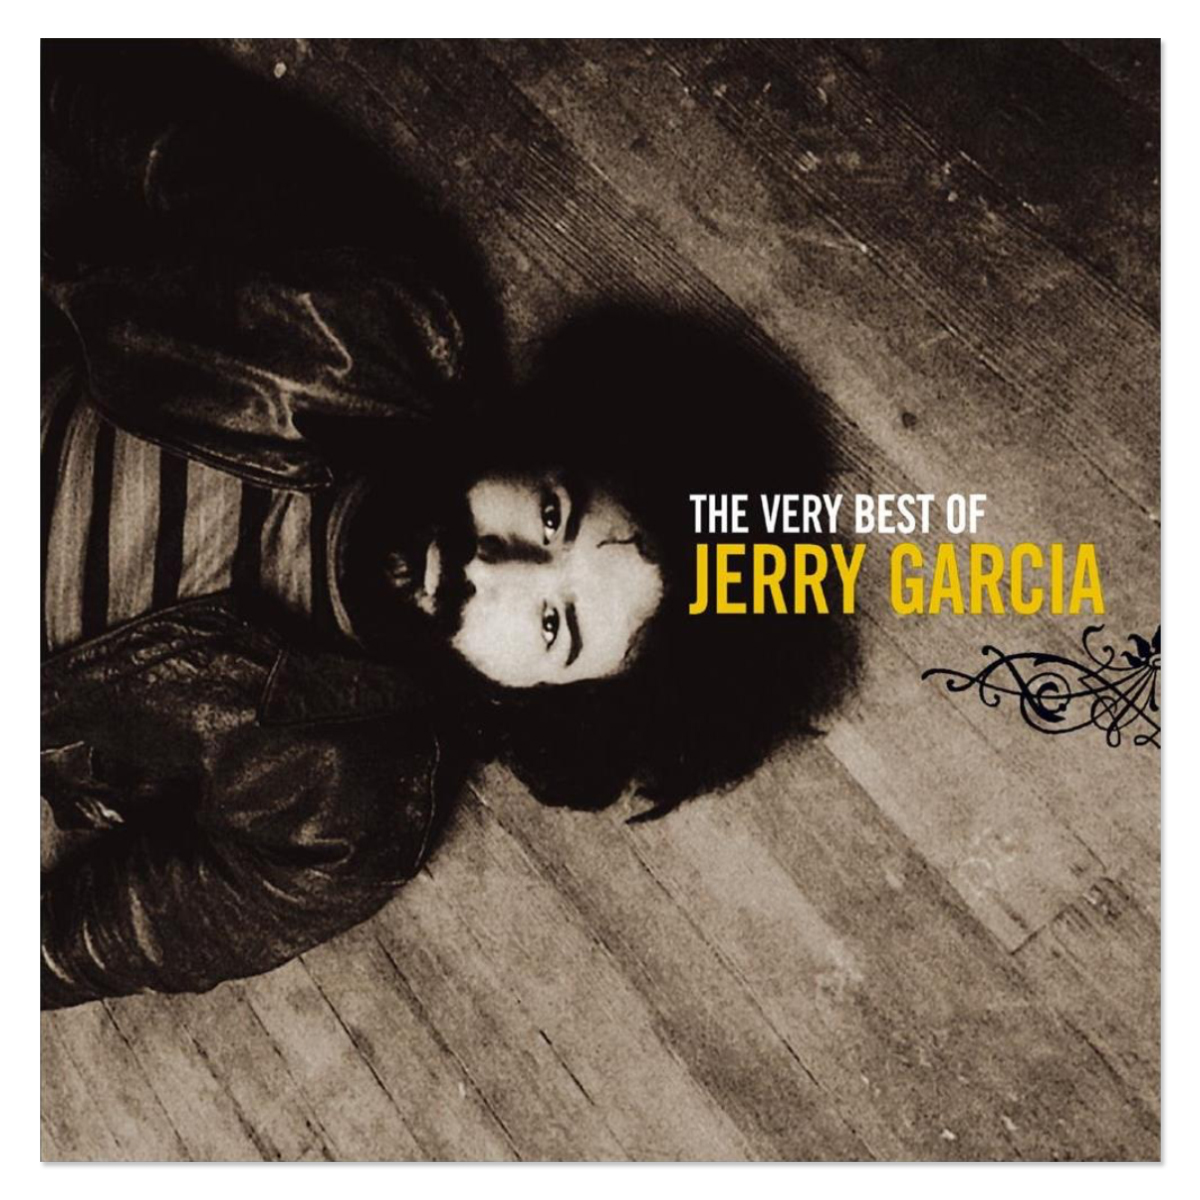 The Very Best of Jerry Garcia - CD